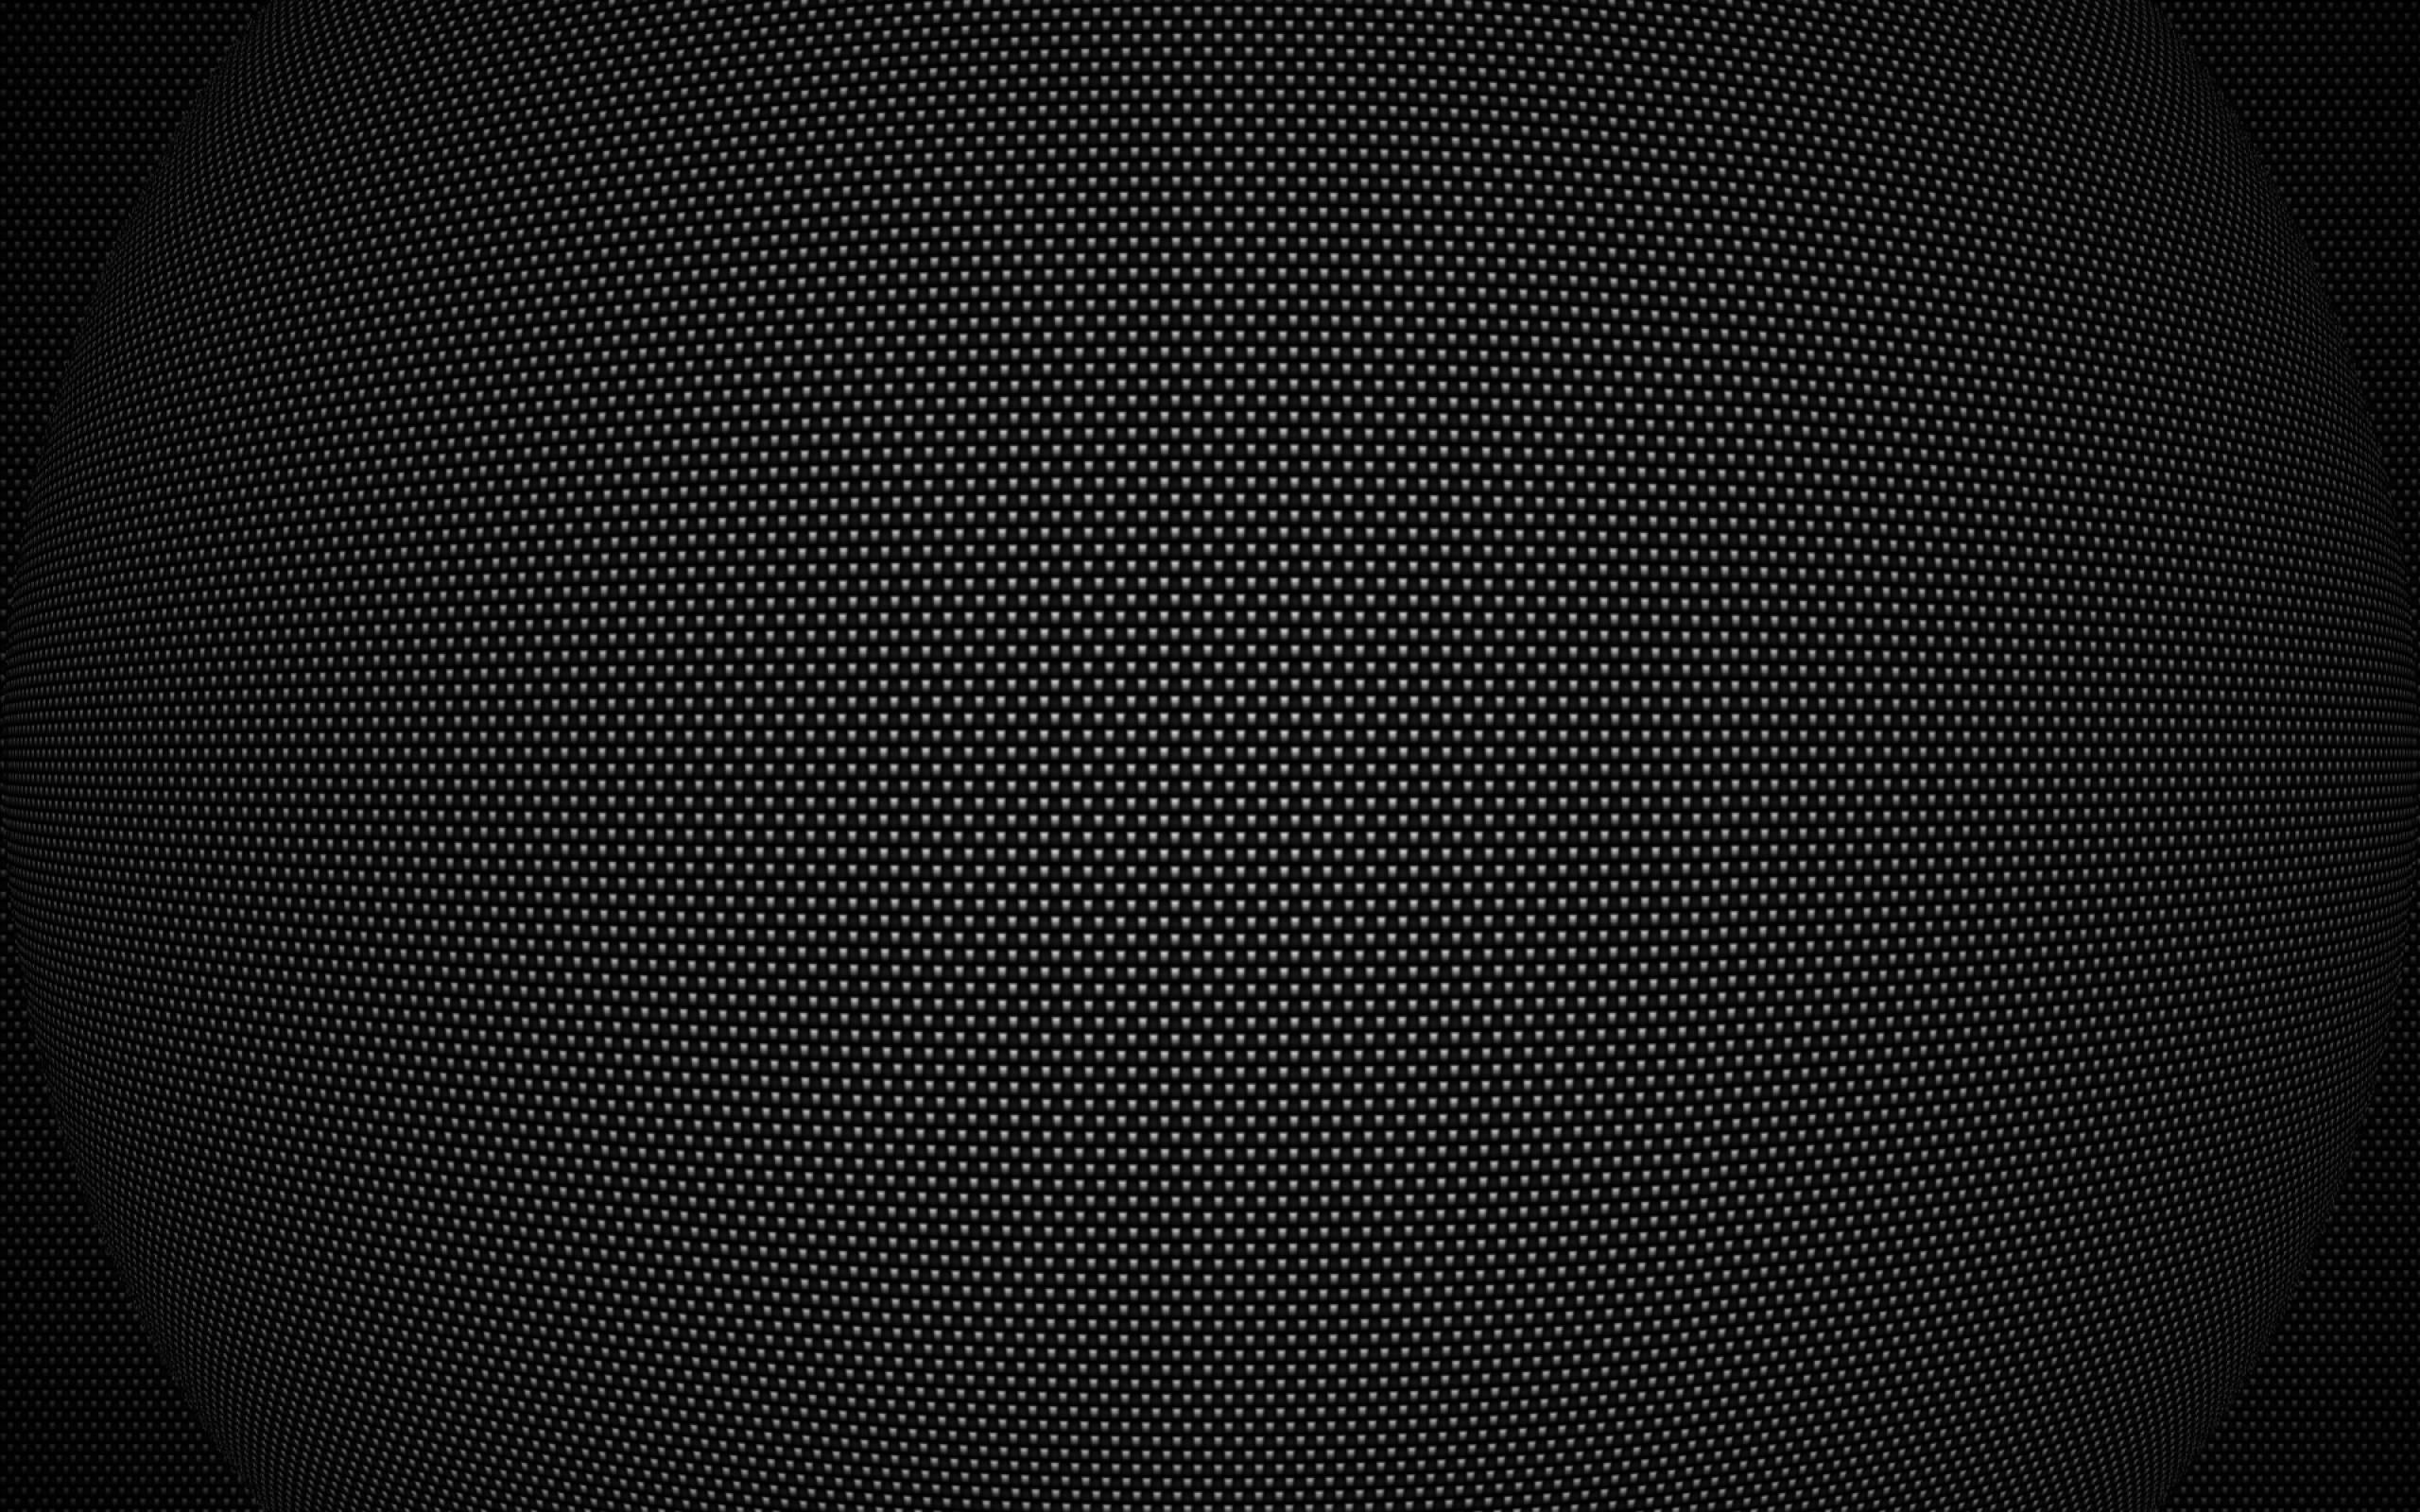 Black Wallpaper Background : Black Texture Wallpapers - Wallpaper Cave